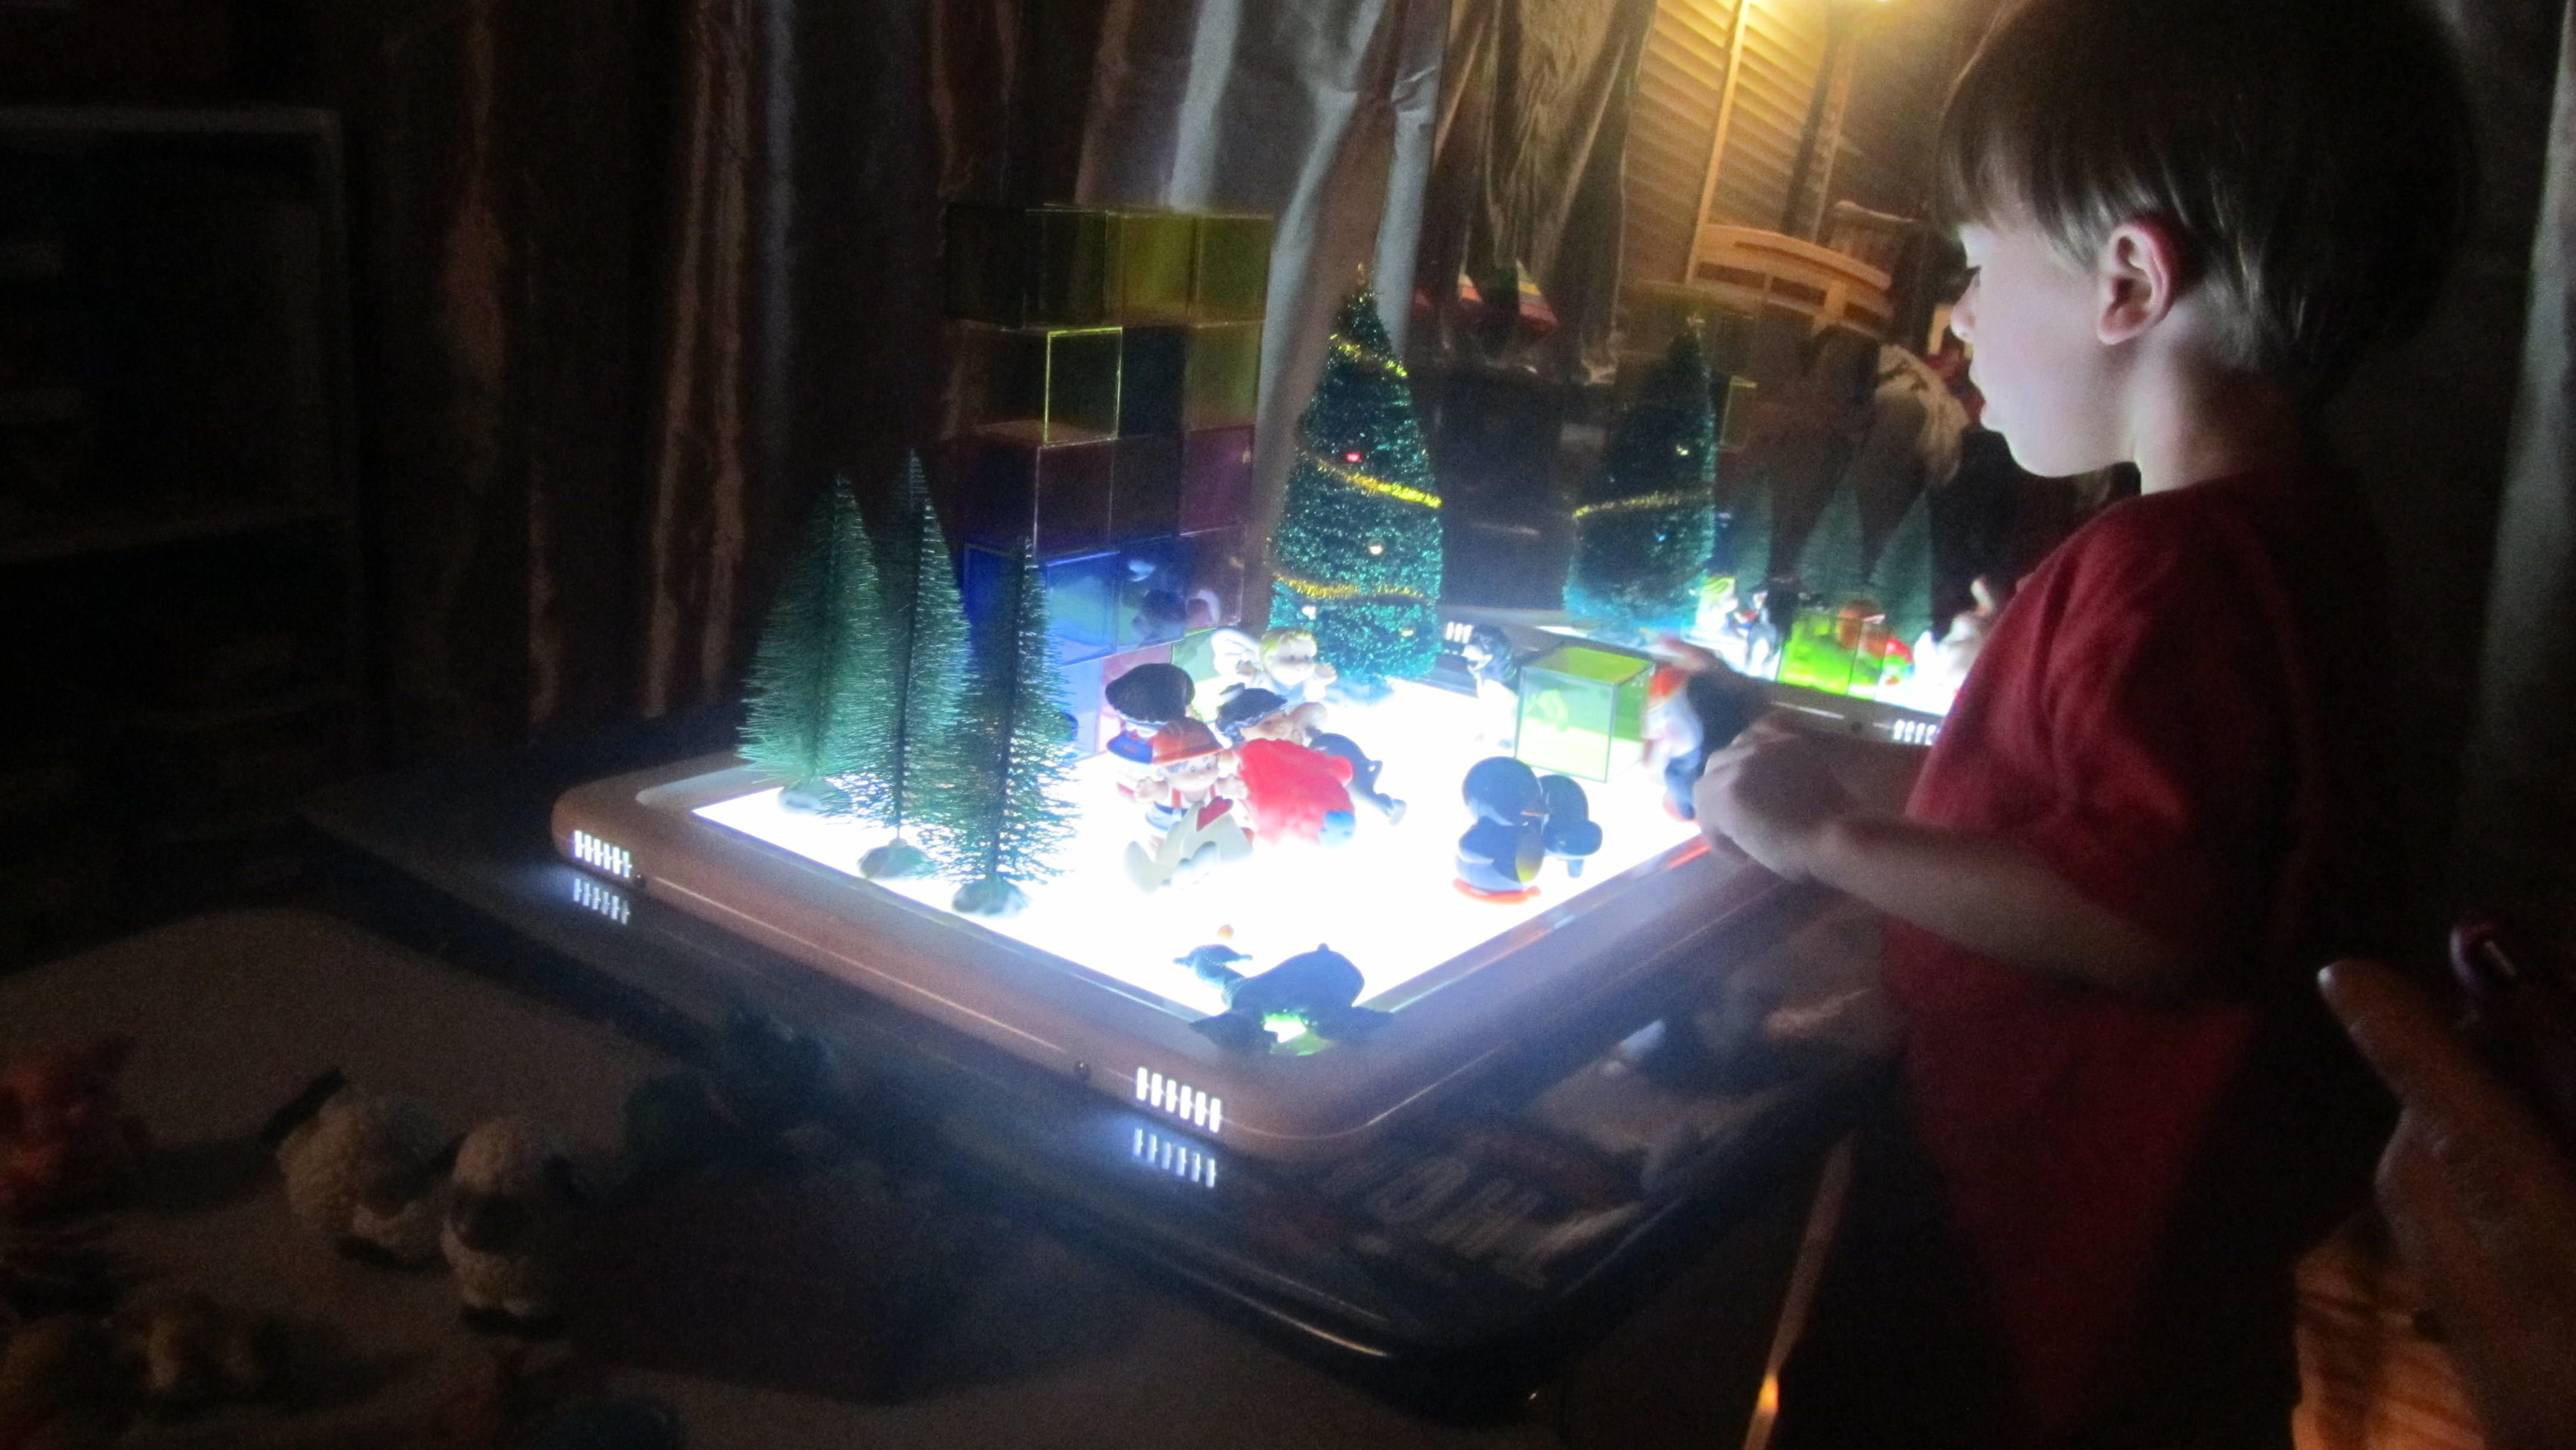 light table fun with crystal cubes, trees, little animals. and  people